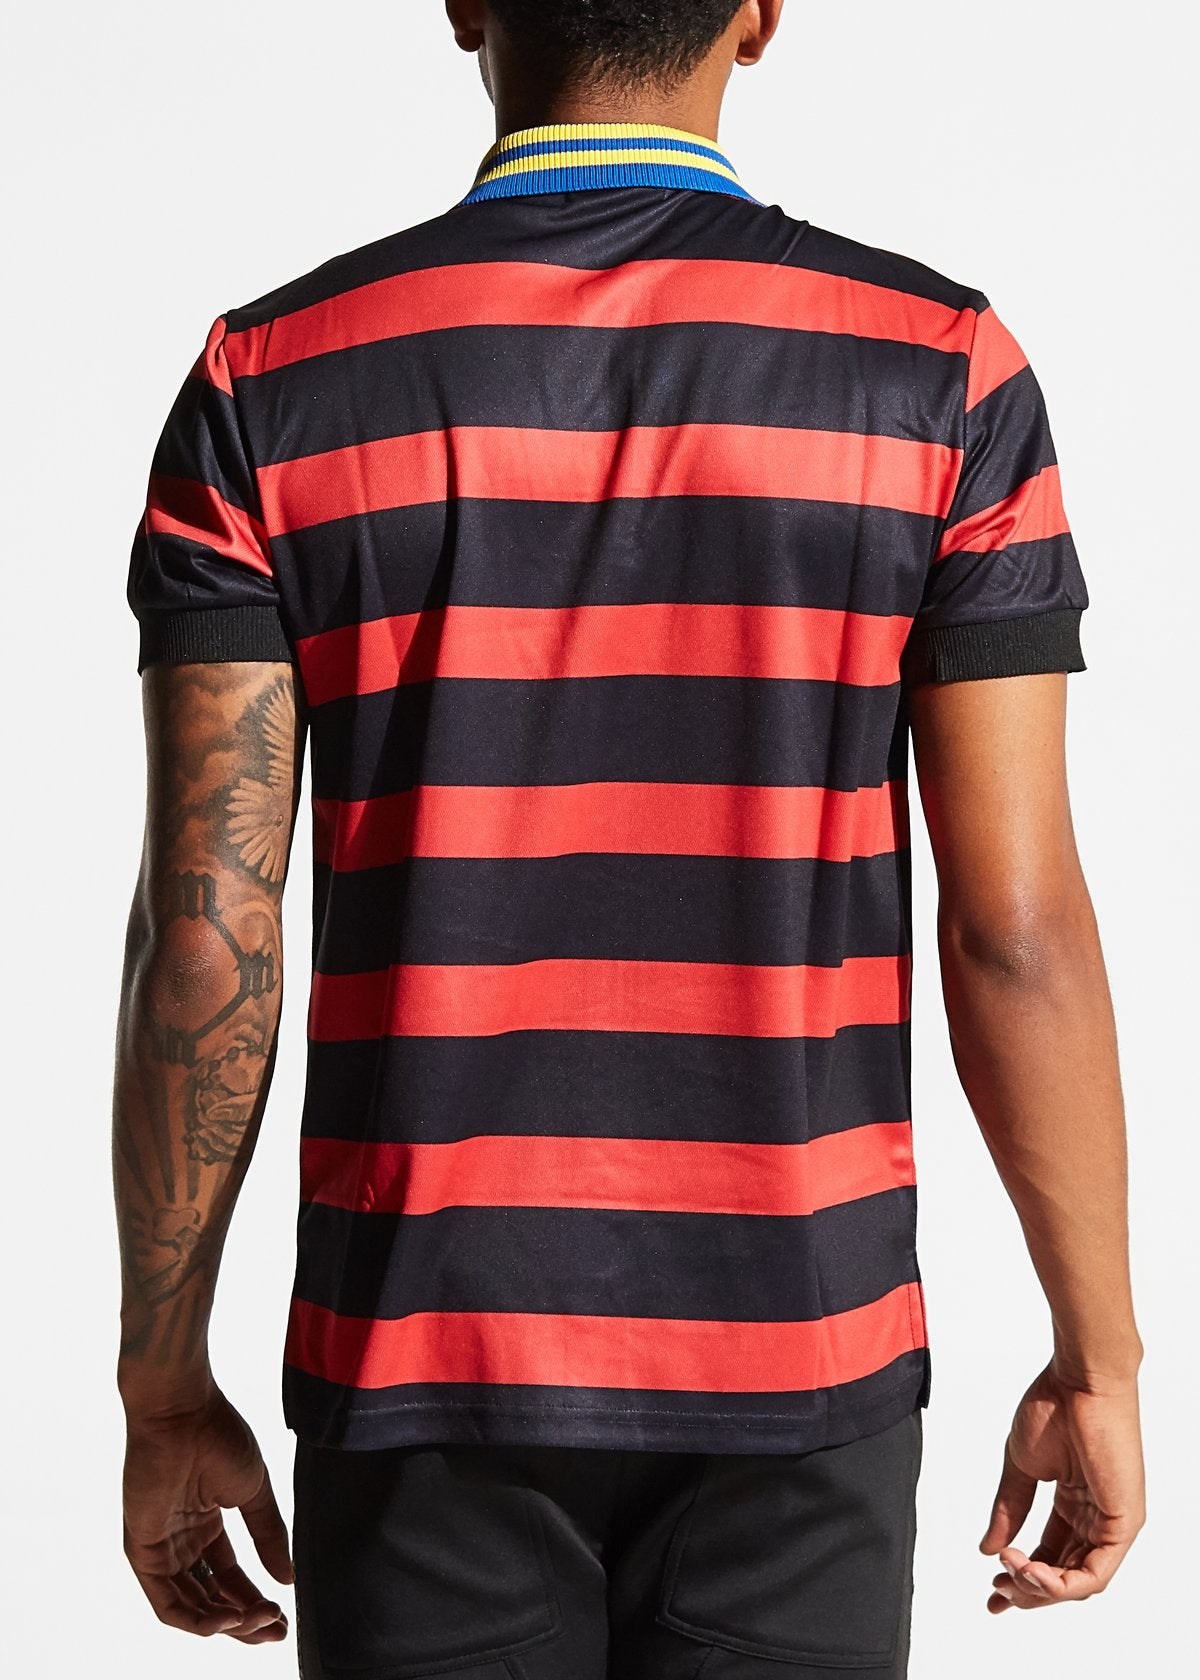 KARTER COLLECTION HOWLETT POLO (BLACK/RED)